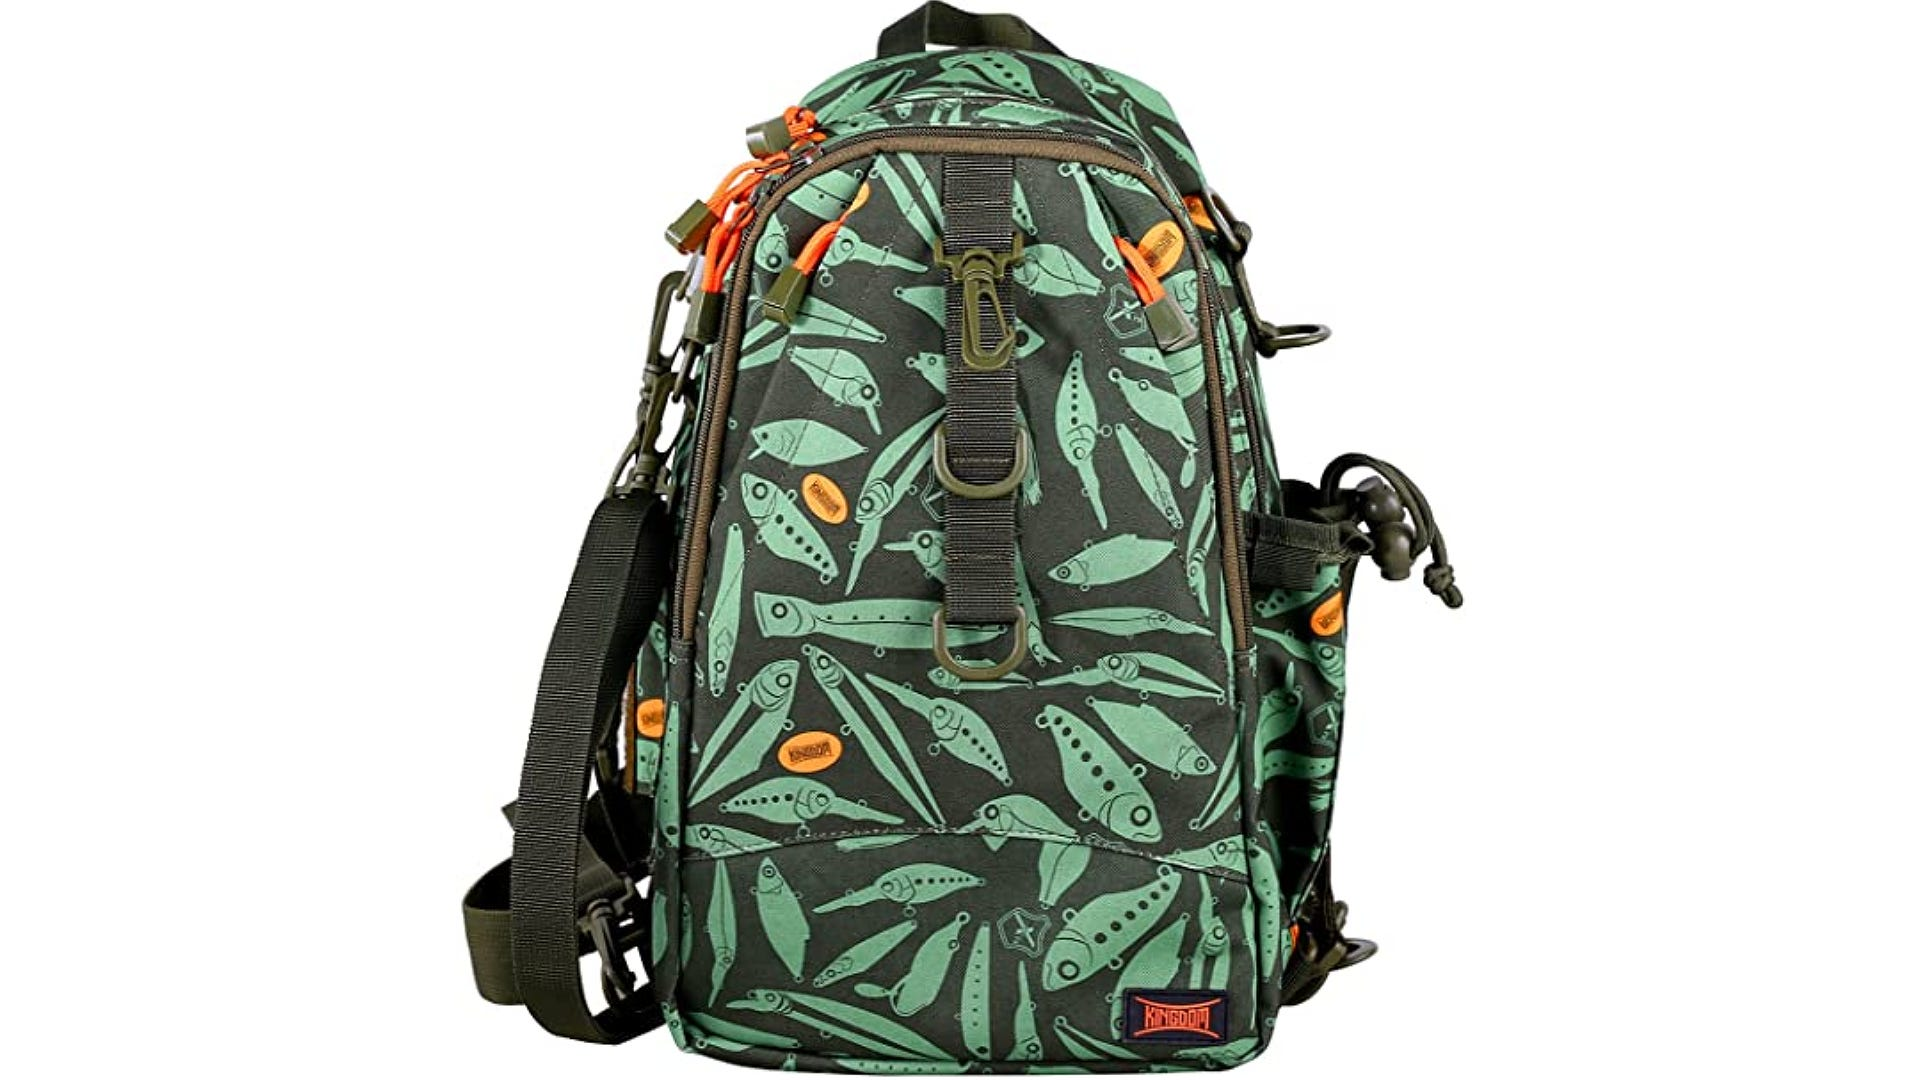 A side view of a green backpack with a fish pattern and multiple pockets.